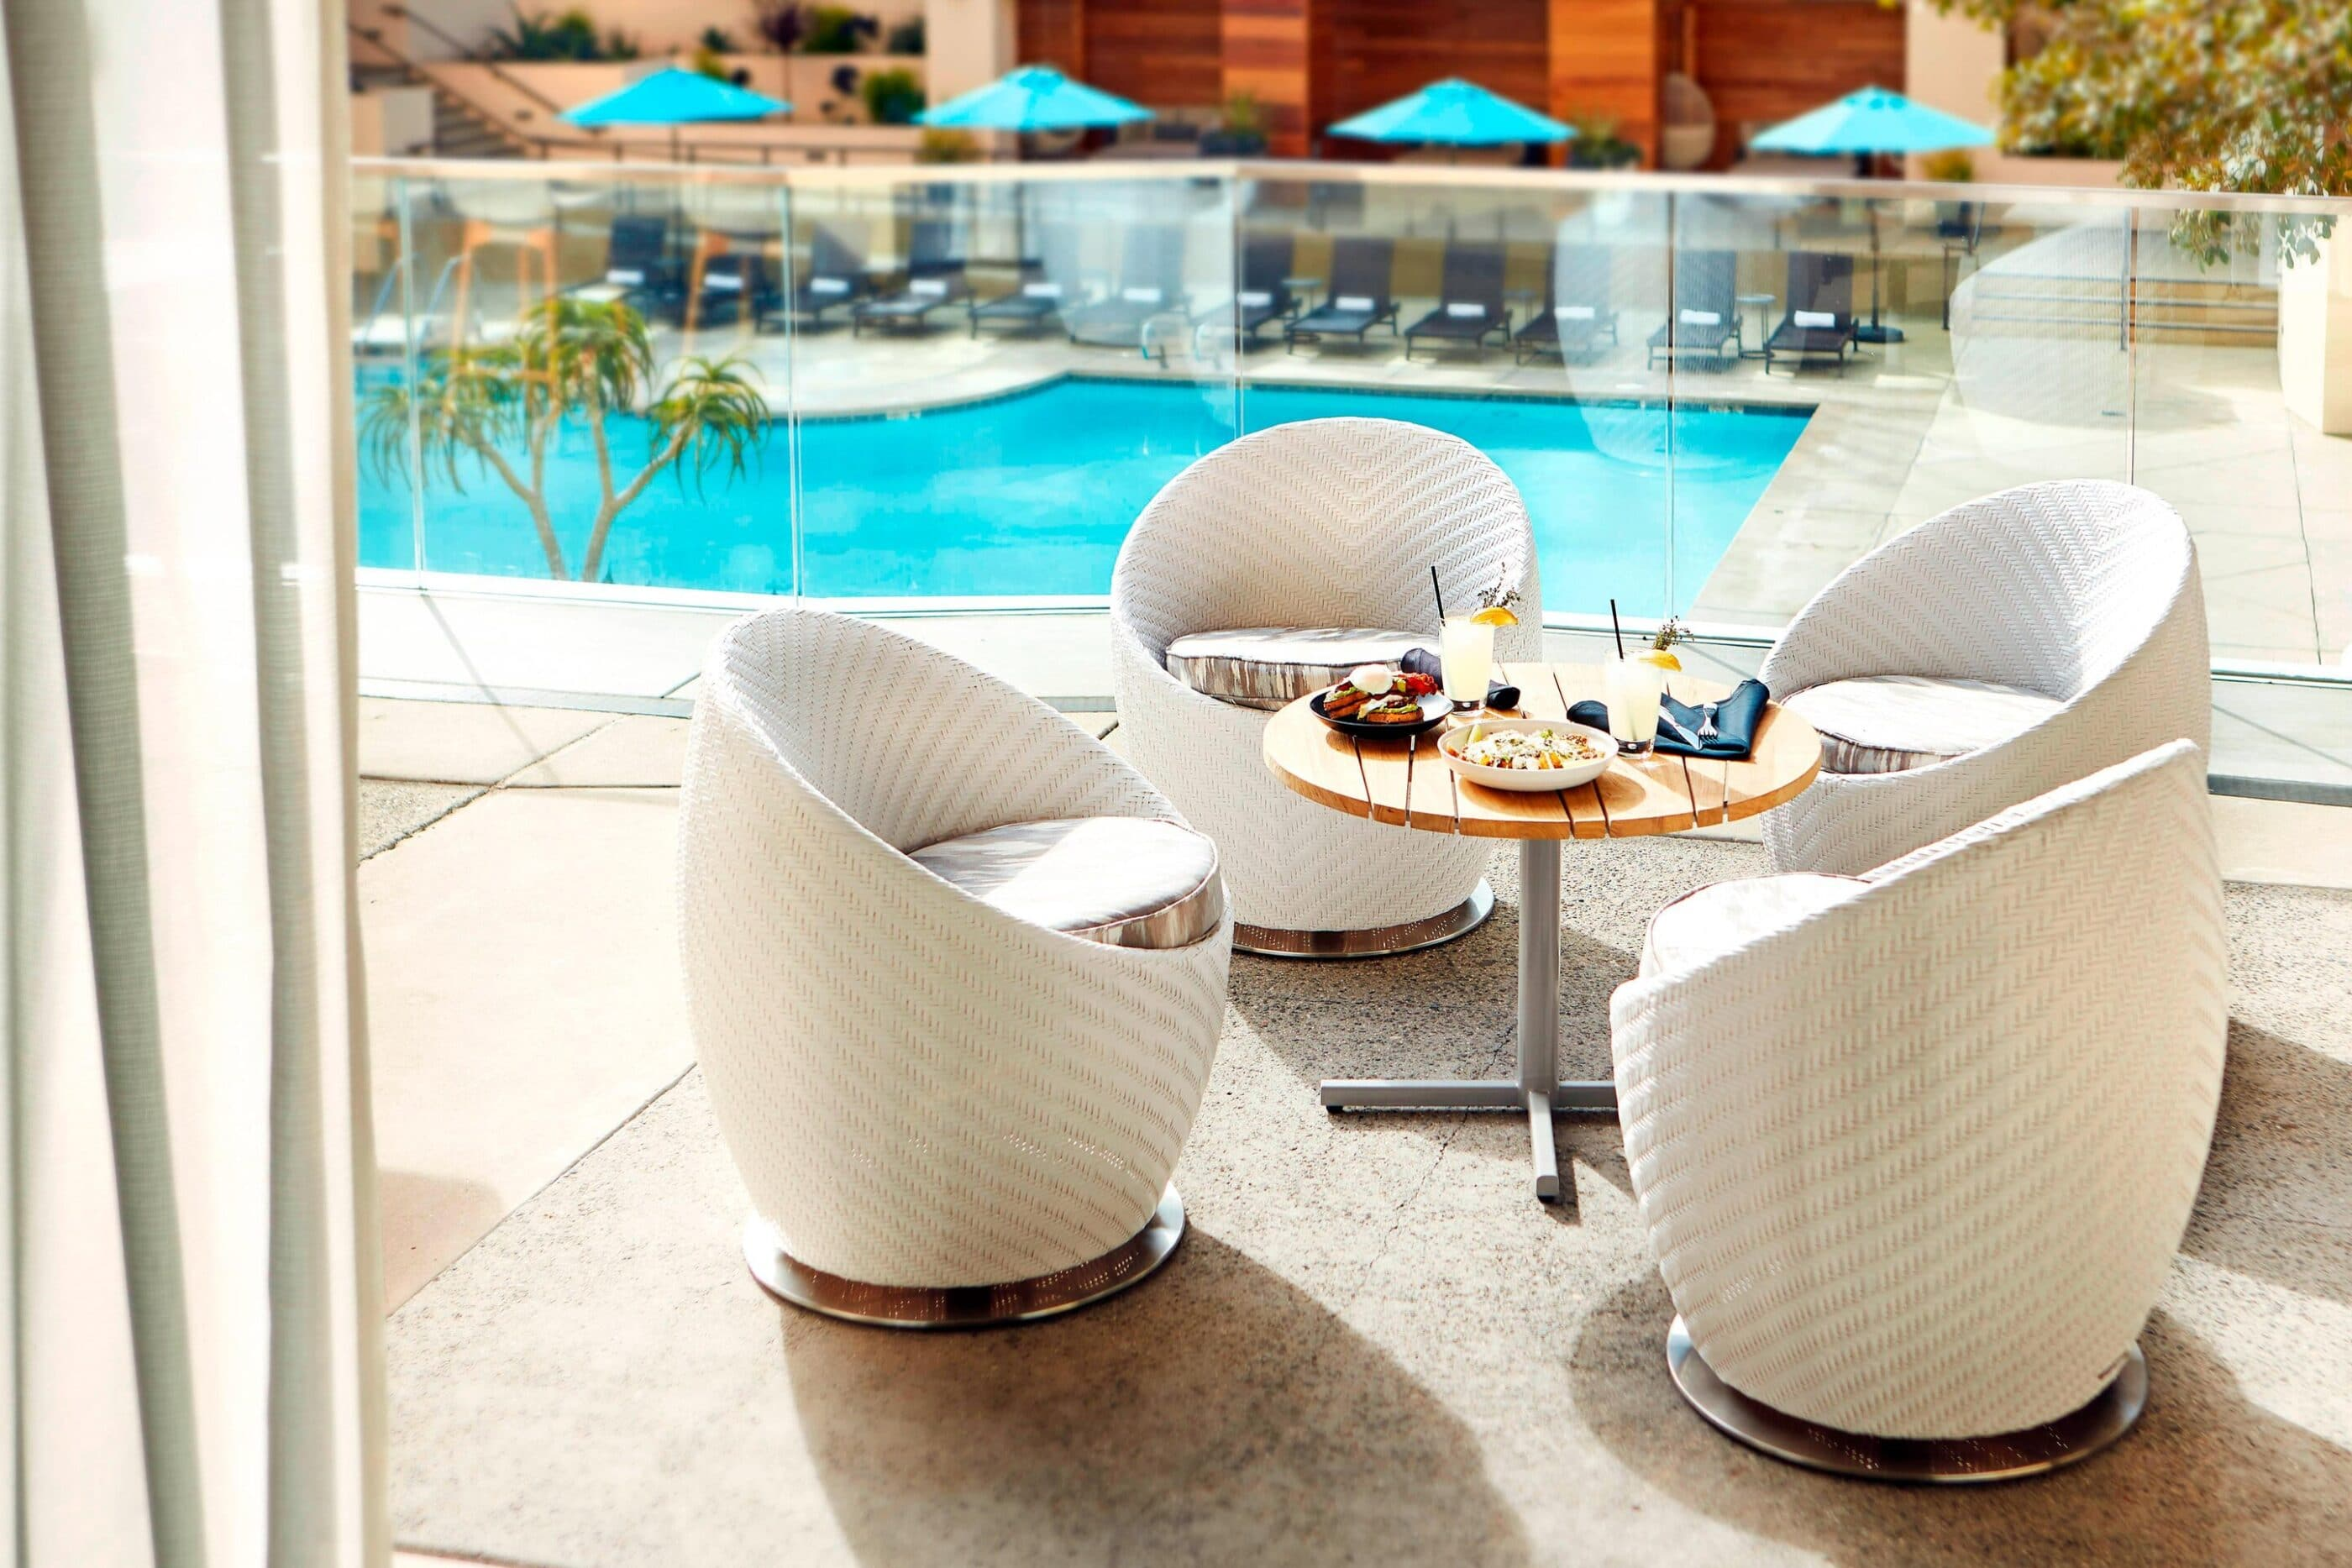 A seating area with food and drinks on the table near the outdoor swimming pool.